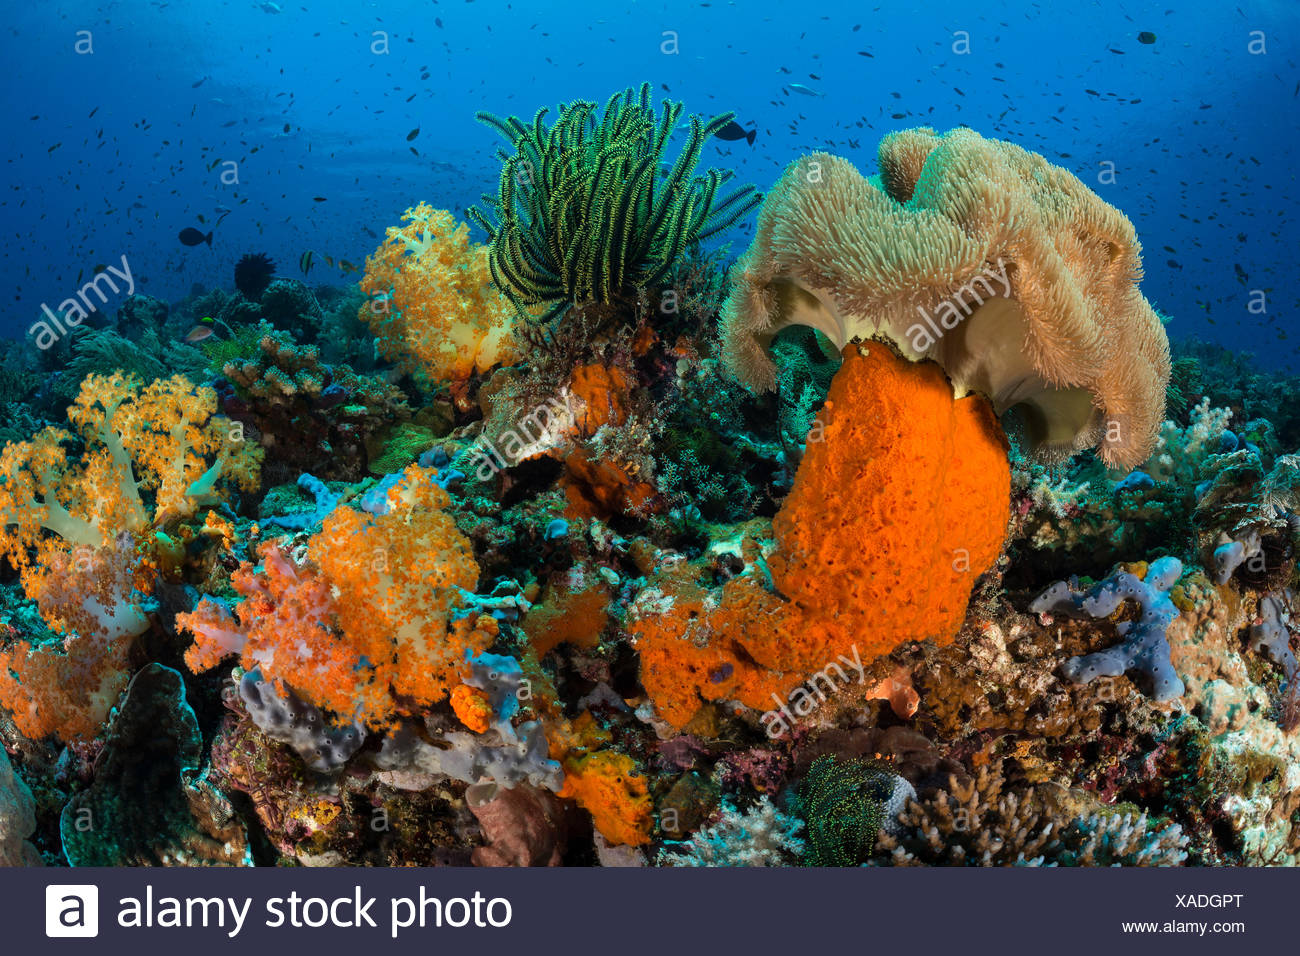 Les récifs coralliens colorés, Komodo, Indonésie Photo Stock